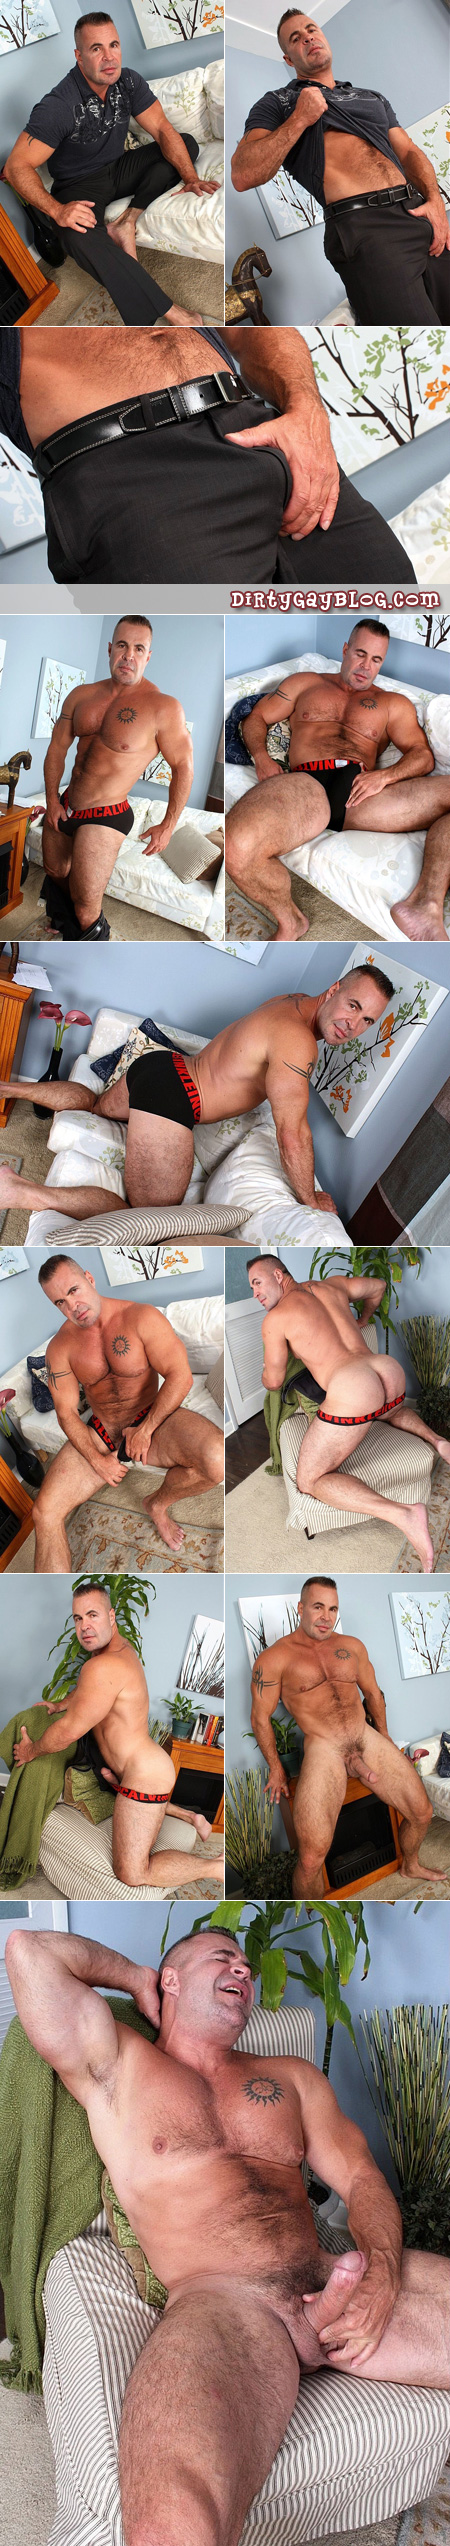 Hairy muscles pack into tight black briefs, this mature muscular bear jacks off on himself